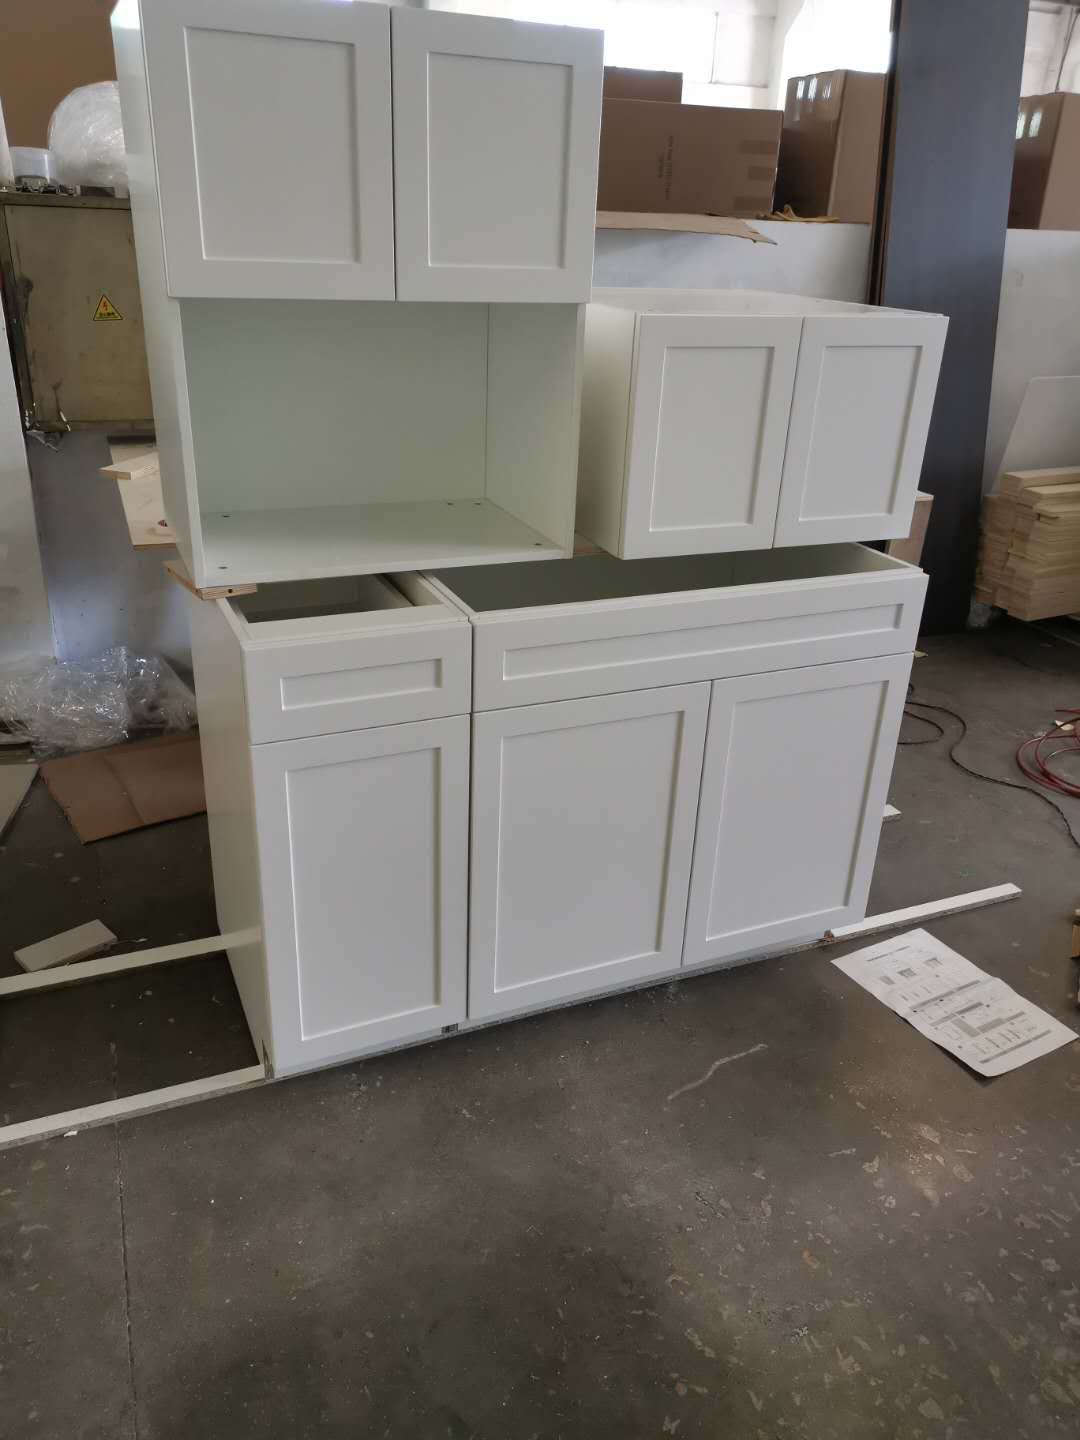 pvc shaker upper cabinets and base cabinets